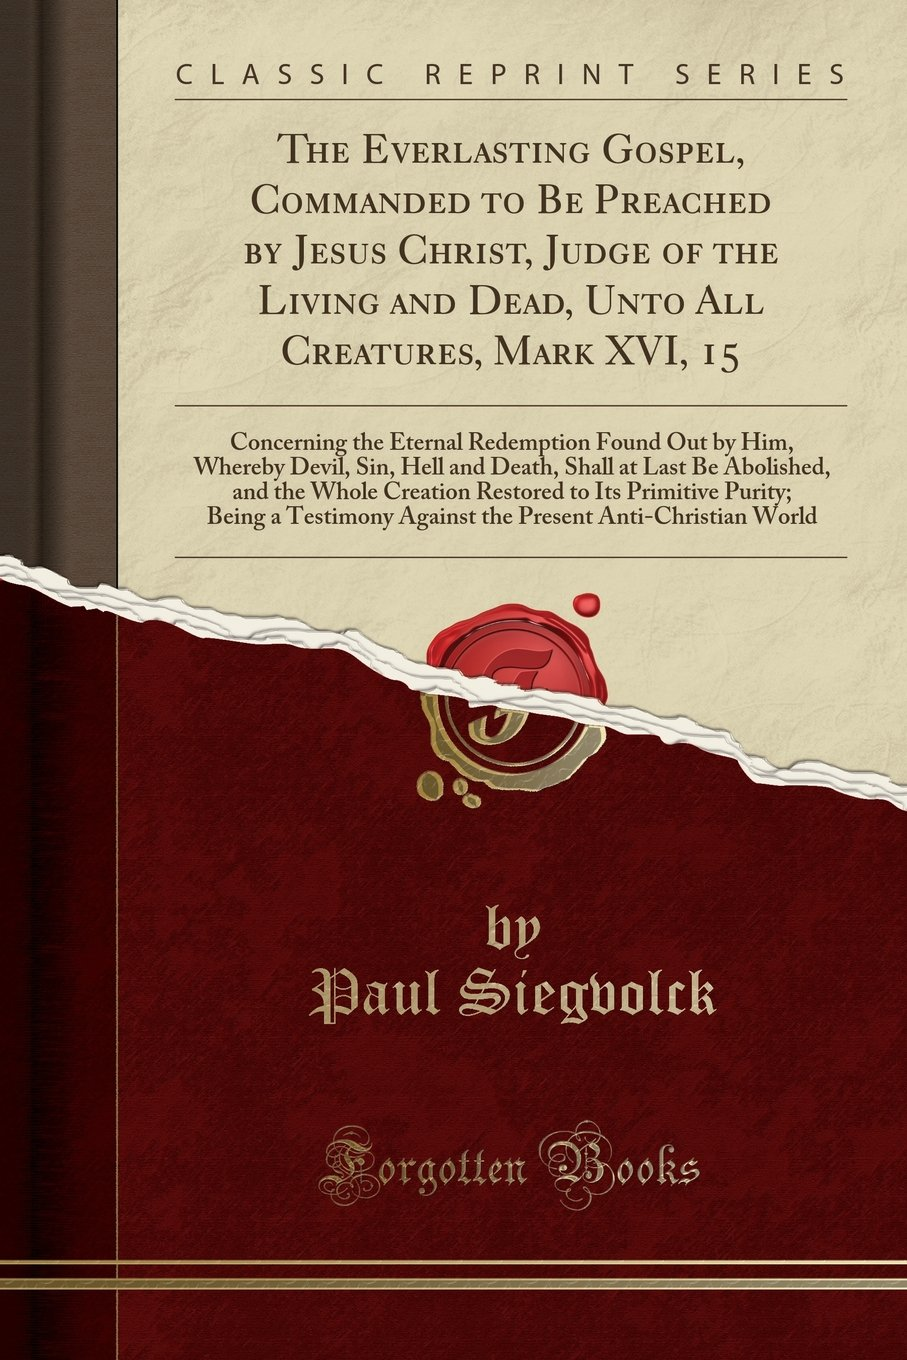 The Everlasting Gospel, Commanded to Be Preached by Jesus Christ, Judge of the Living and Dead, Unto All Creatures, Mark XVI, 15: Concerning the ... Death, Shall at Last Be Abolished, and the W PDF